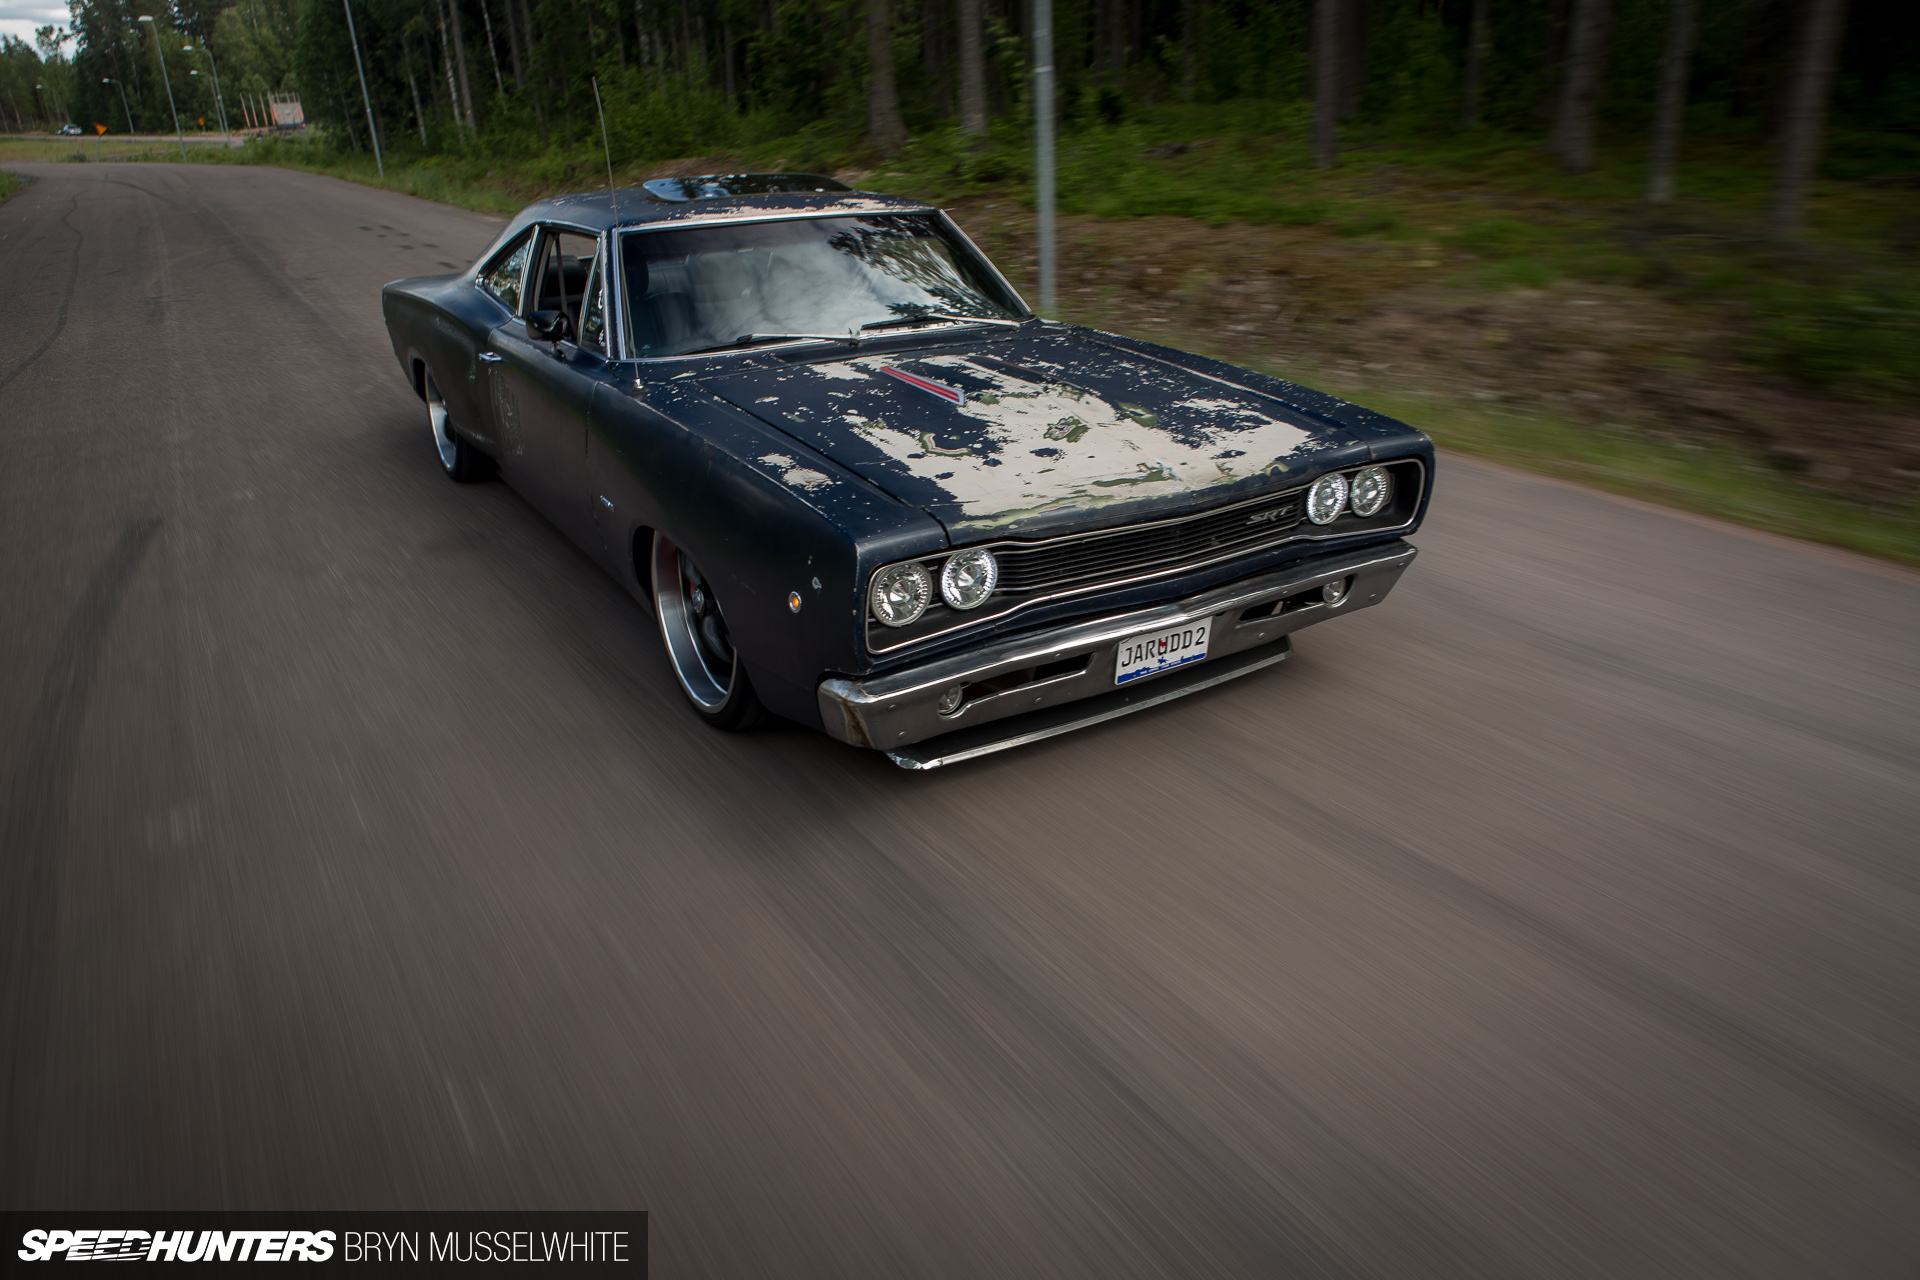 Jaruds-Bil-SE-Crazy-by-Steven-Coronet-Charger-34